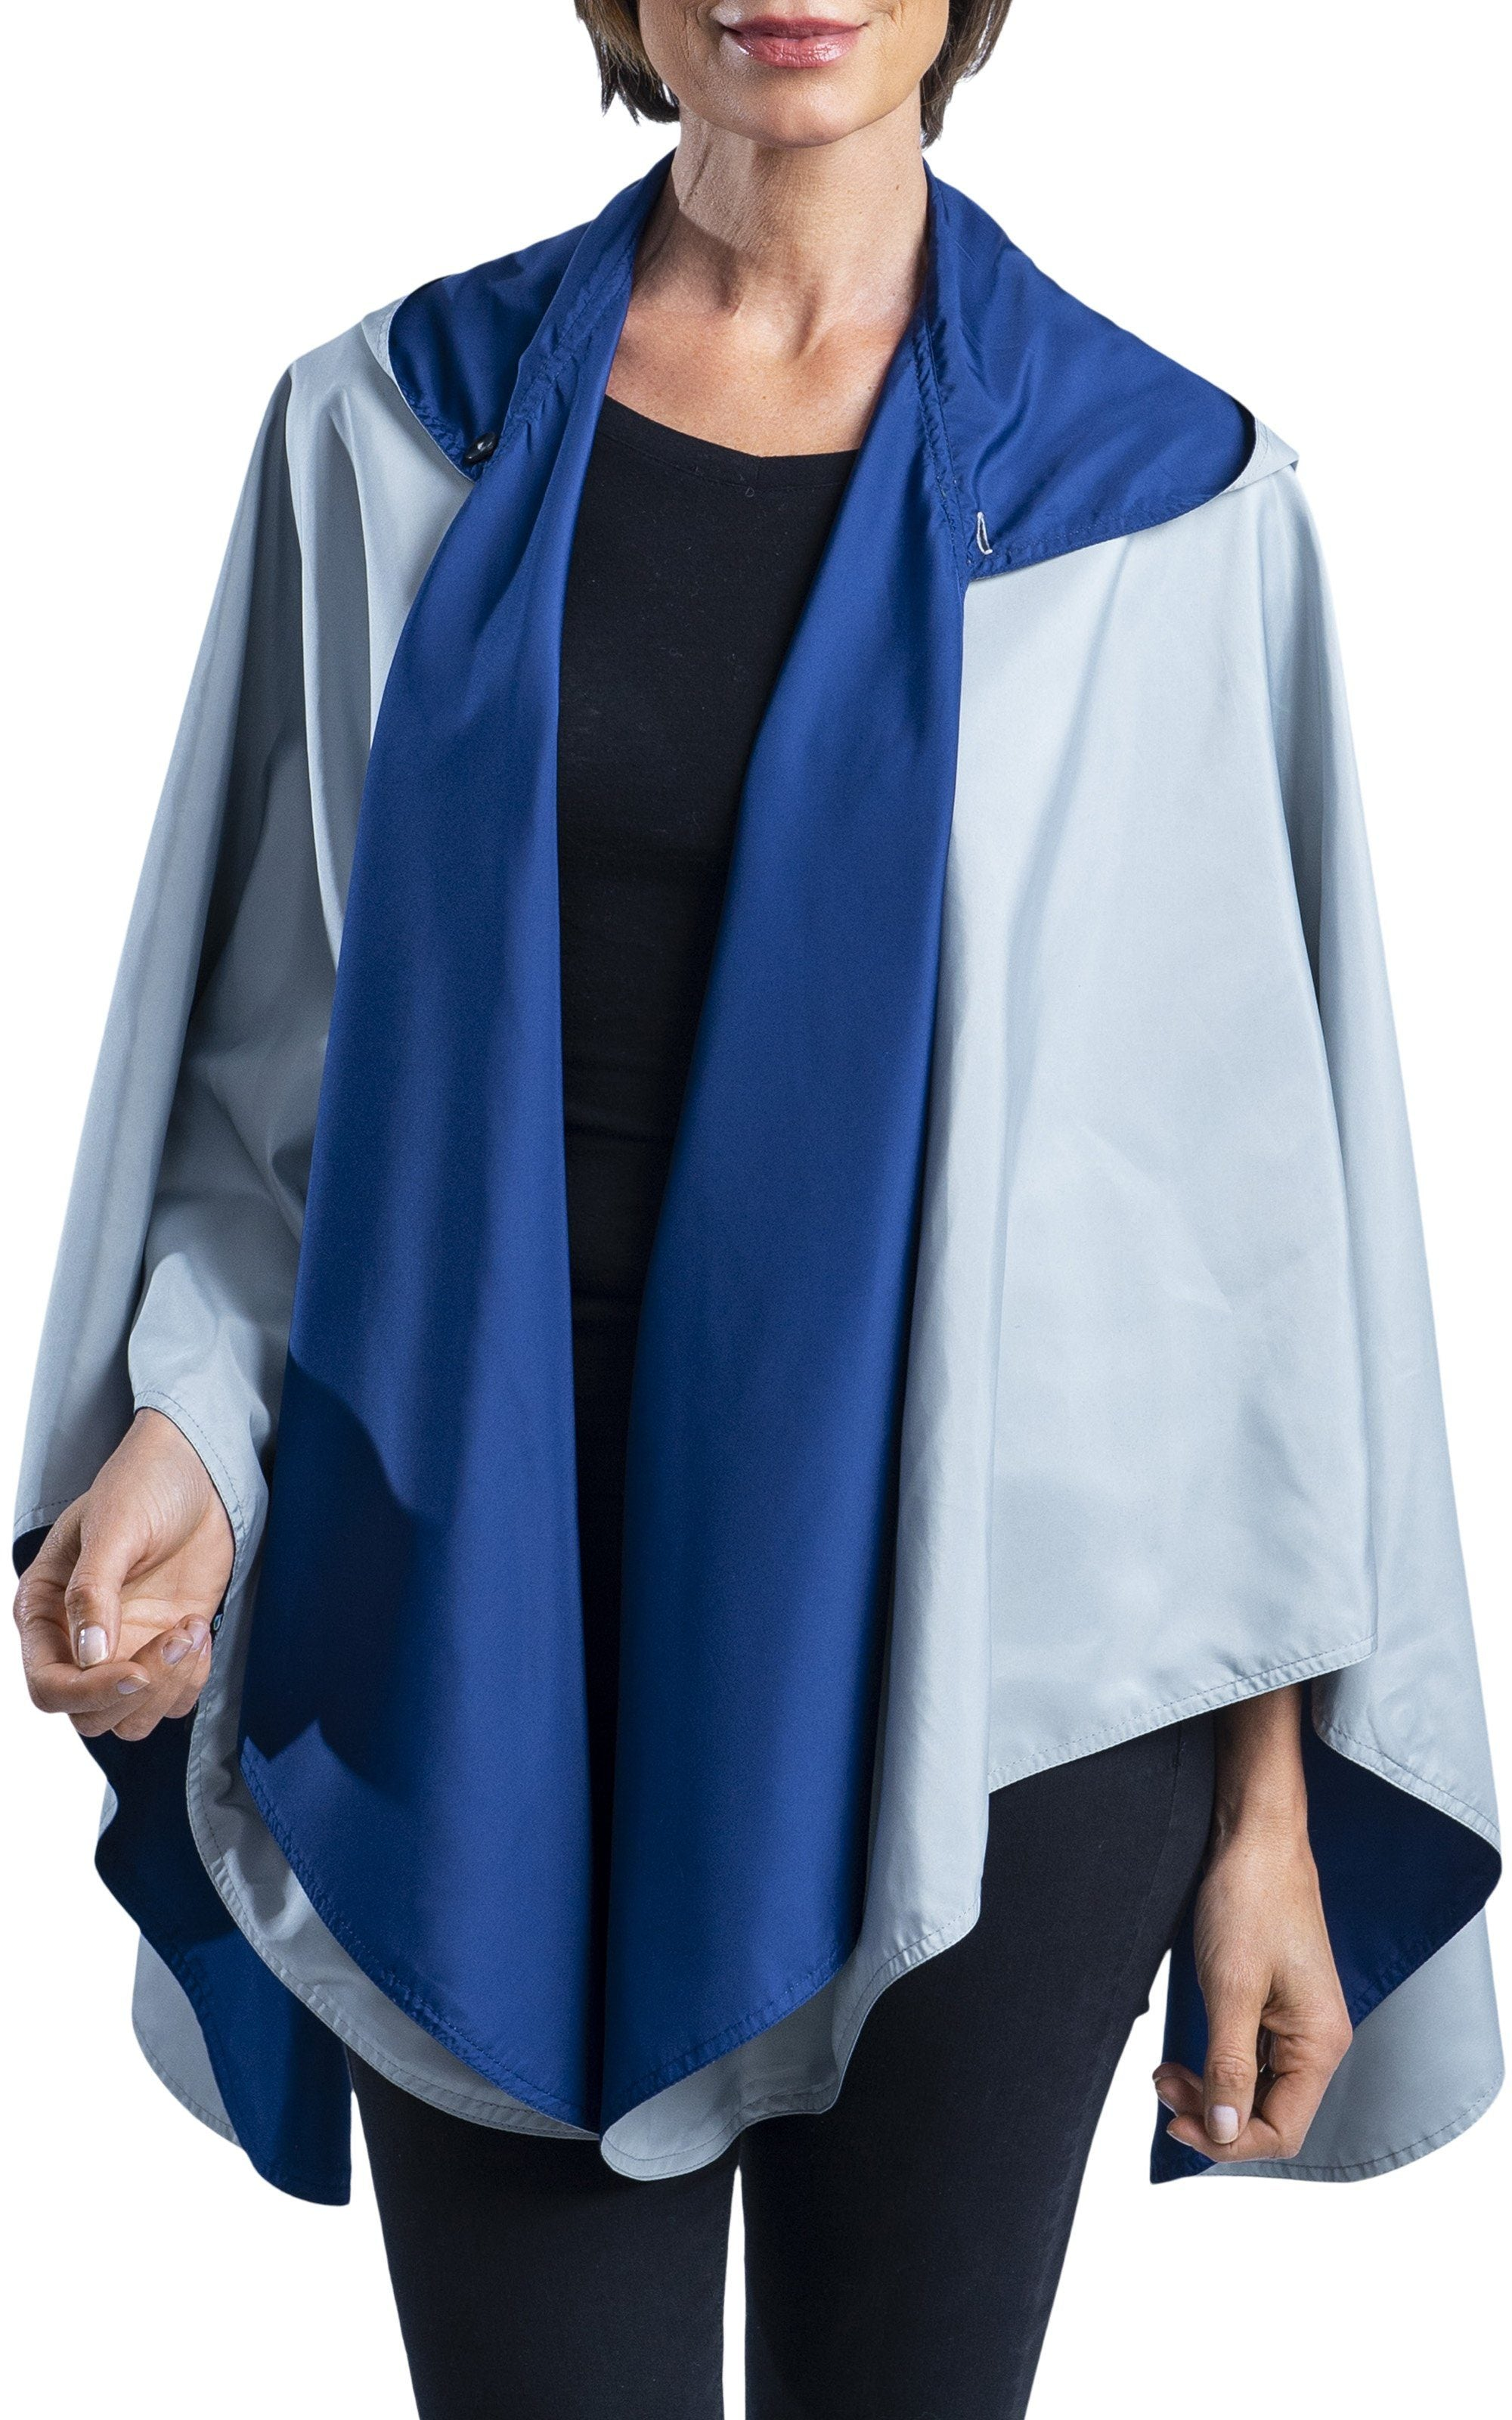 Woman wearing a SpiritCaper Navy & Grey Travel & Sports Cape